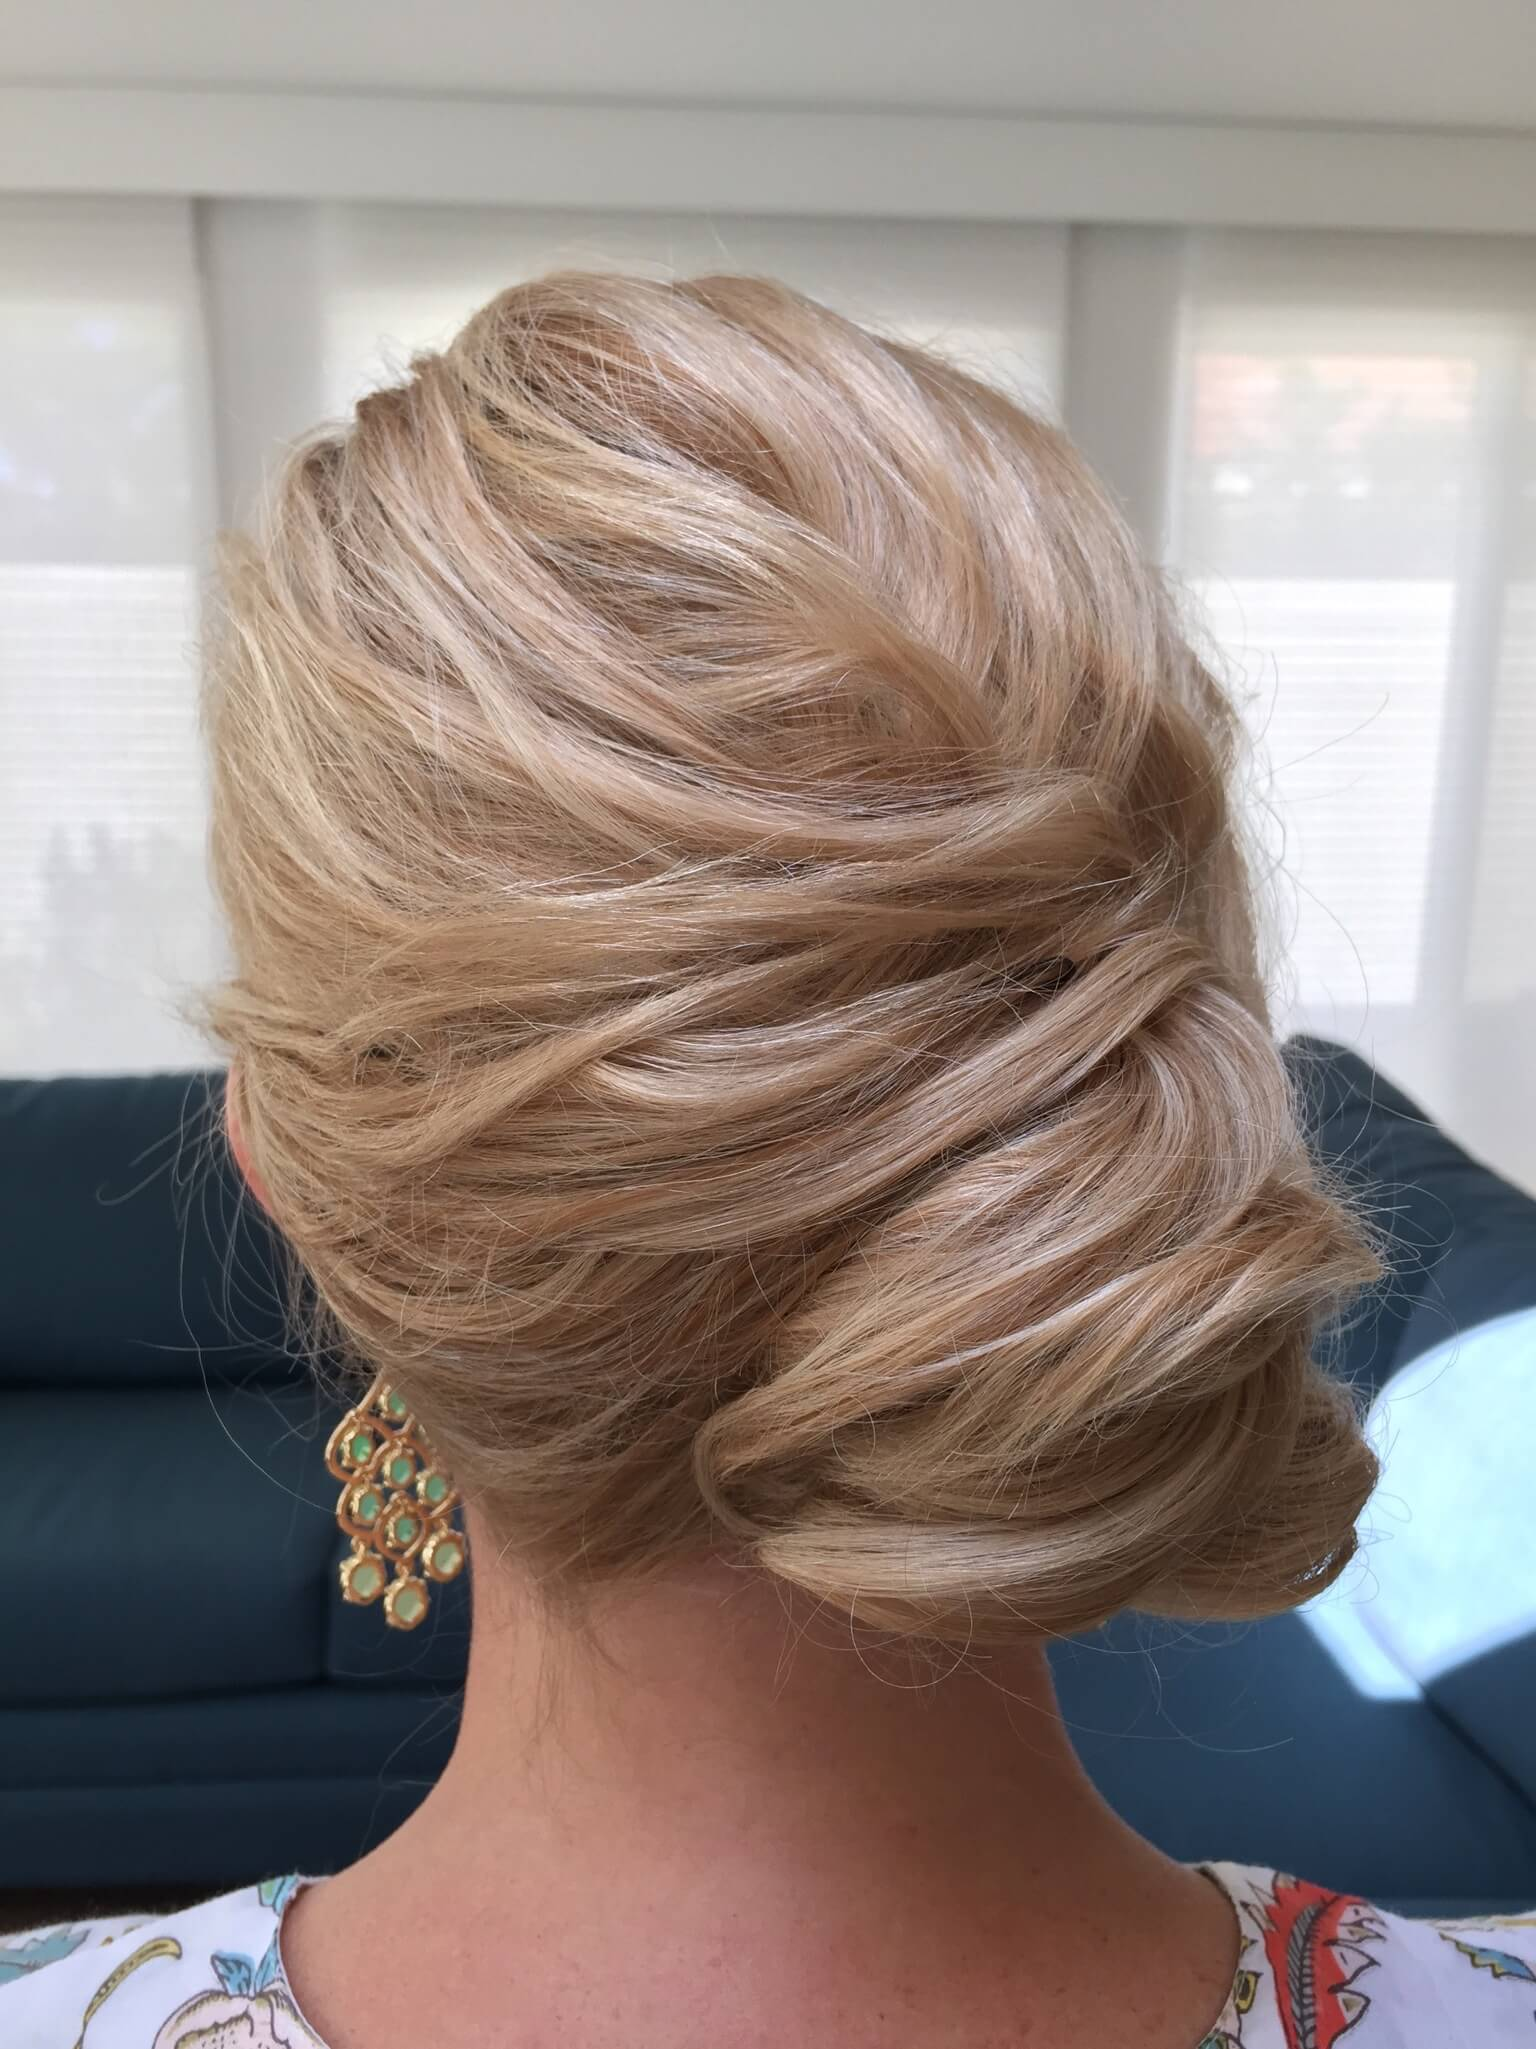 hair-salon-jacksonville-wedding-hairstyles-58